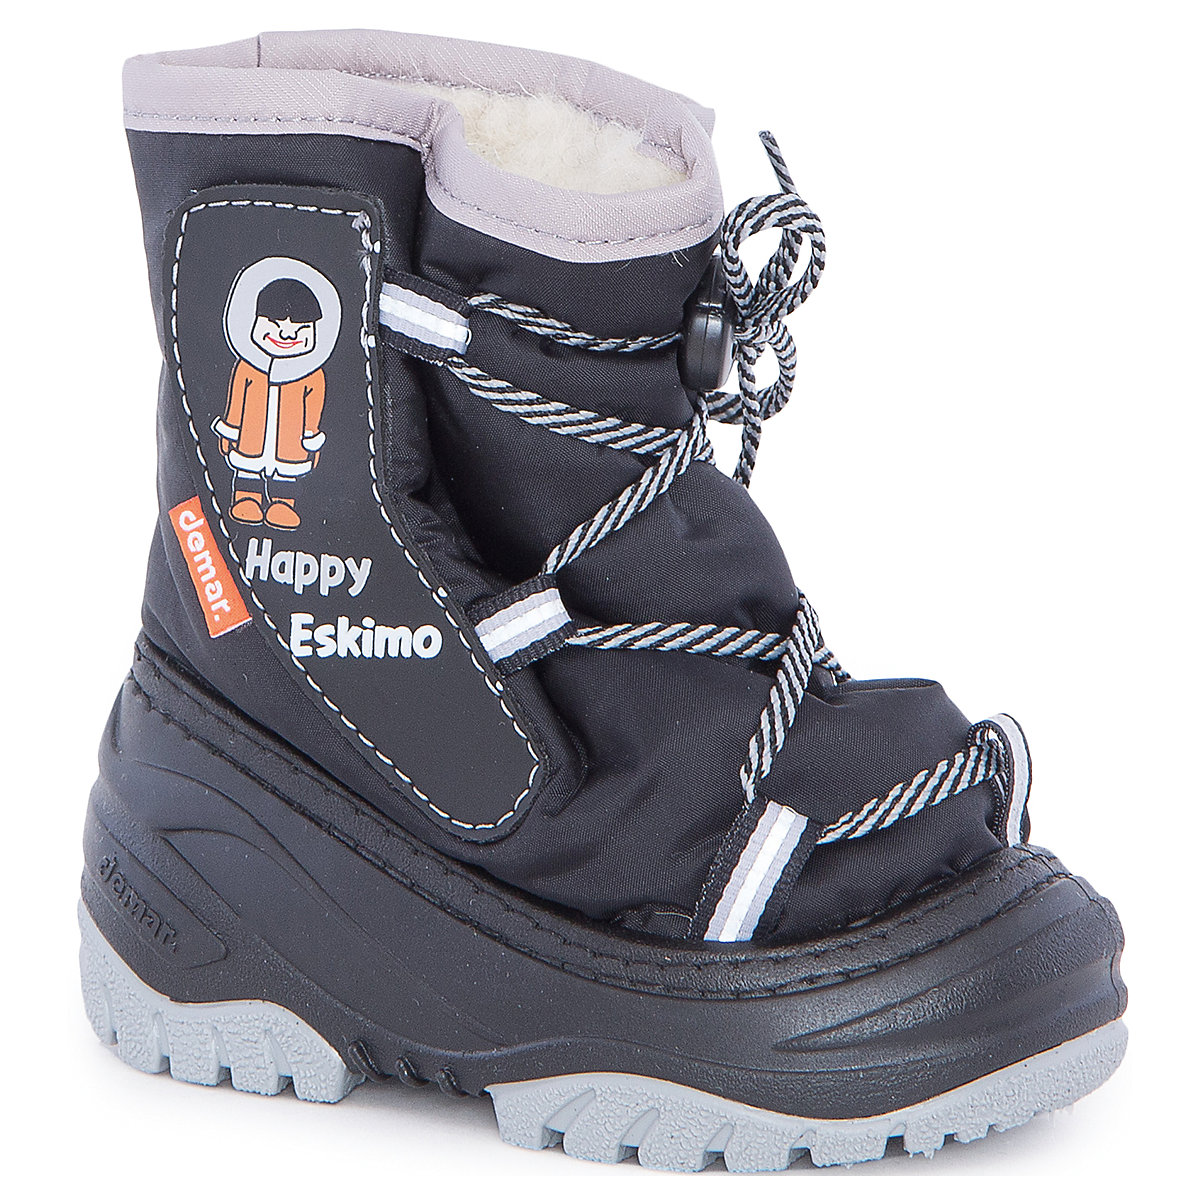 Boots Demar for boys 6835181 Valenki Uggi Winter Baby Kids Children shoes flamingo winter waterproof wool warm high quality kids shoes orthotic arch anti slip size 23 28 snow boots for girl 82m qk 0921